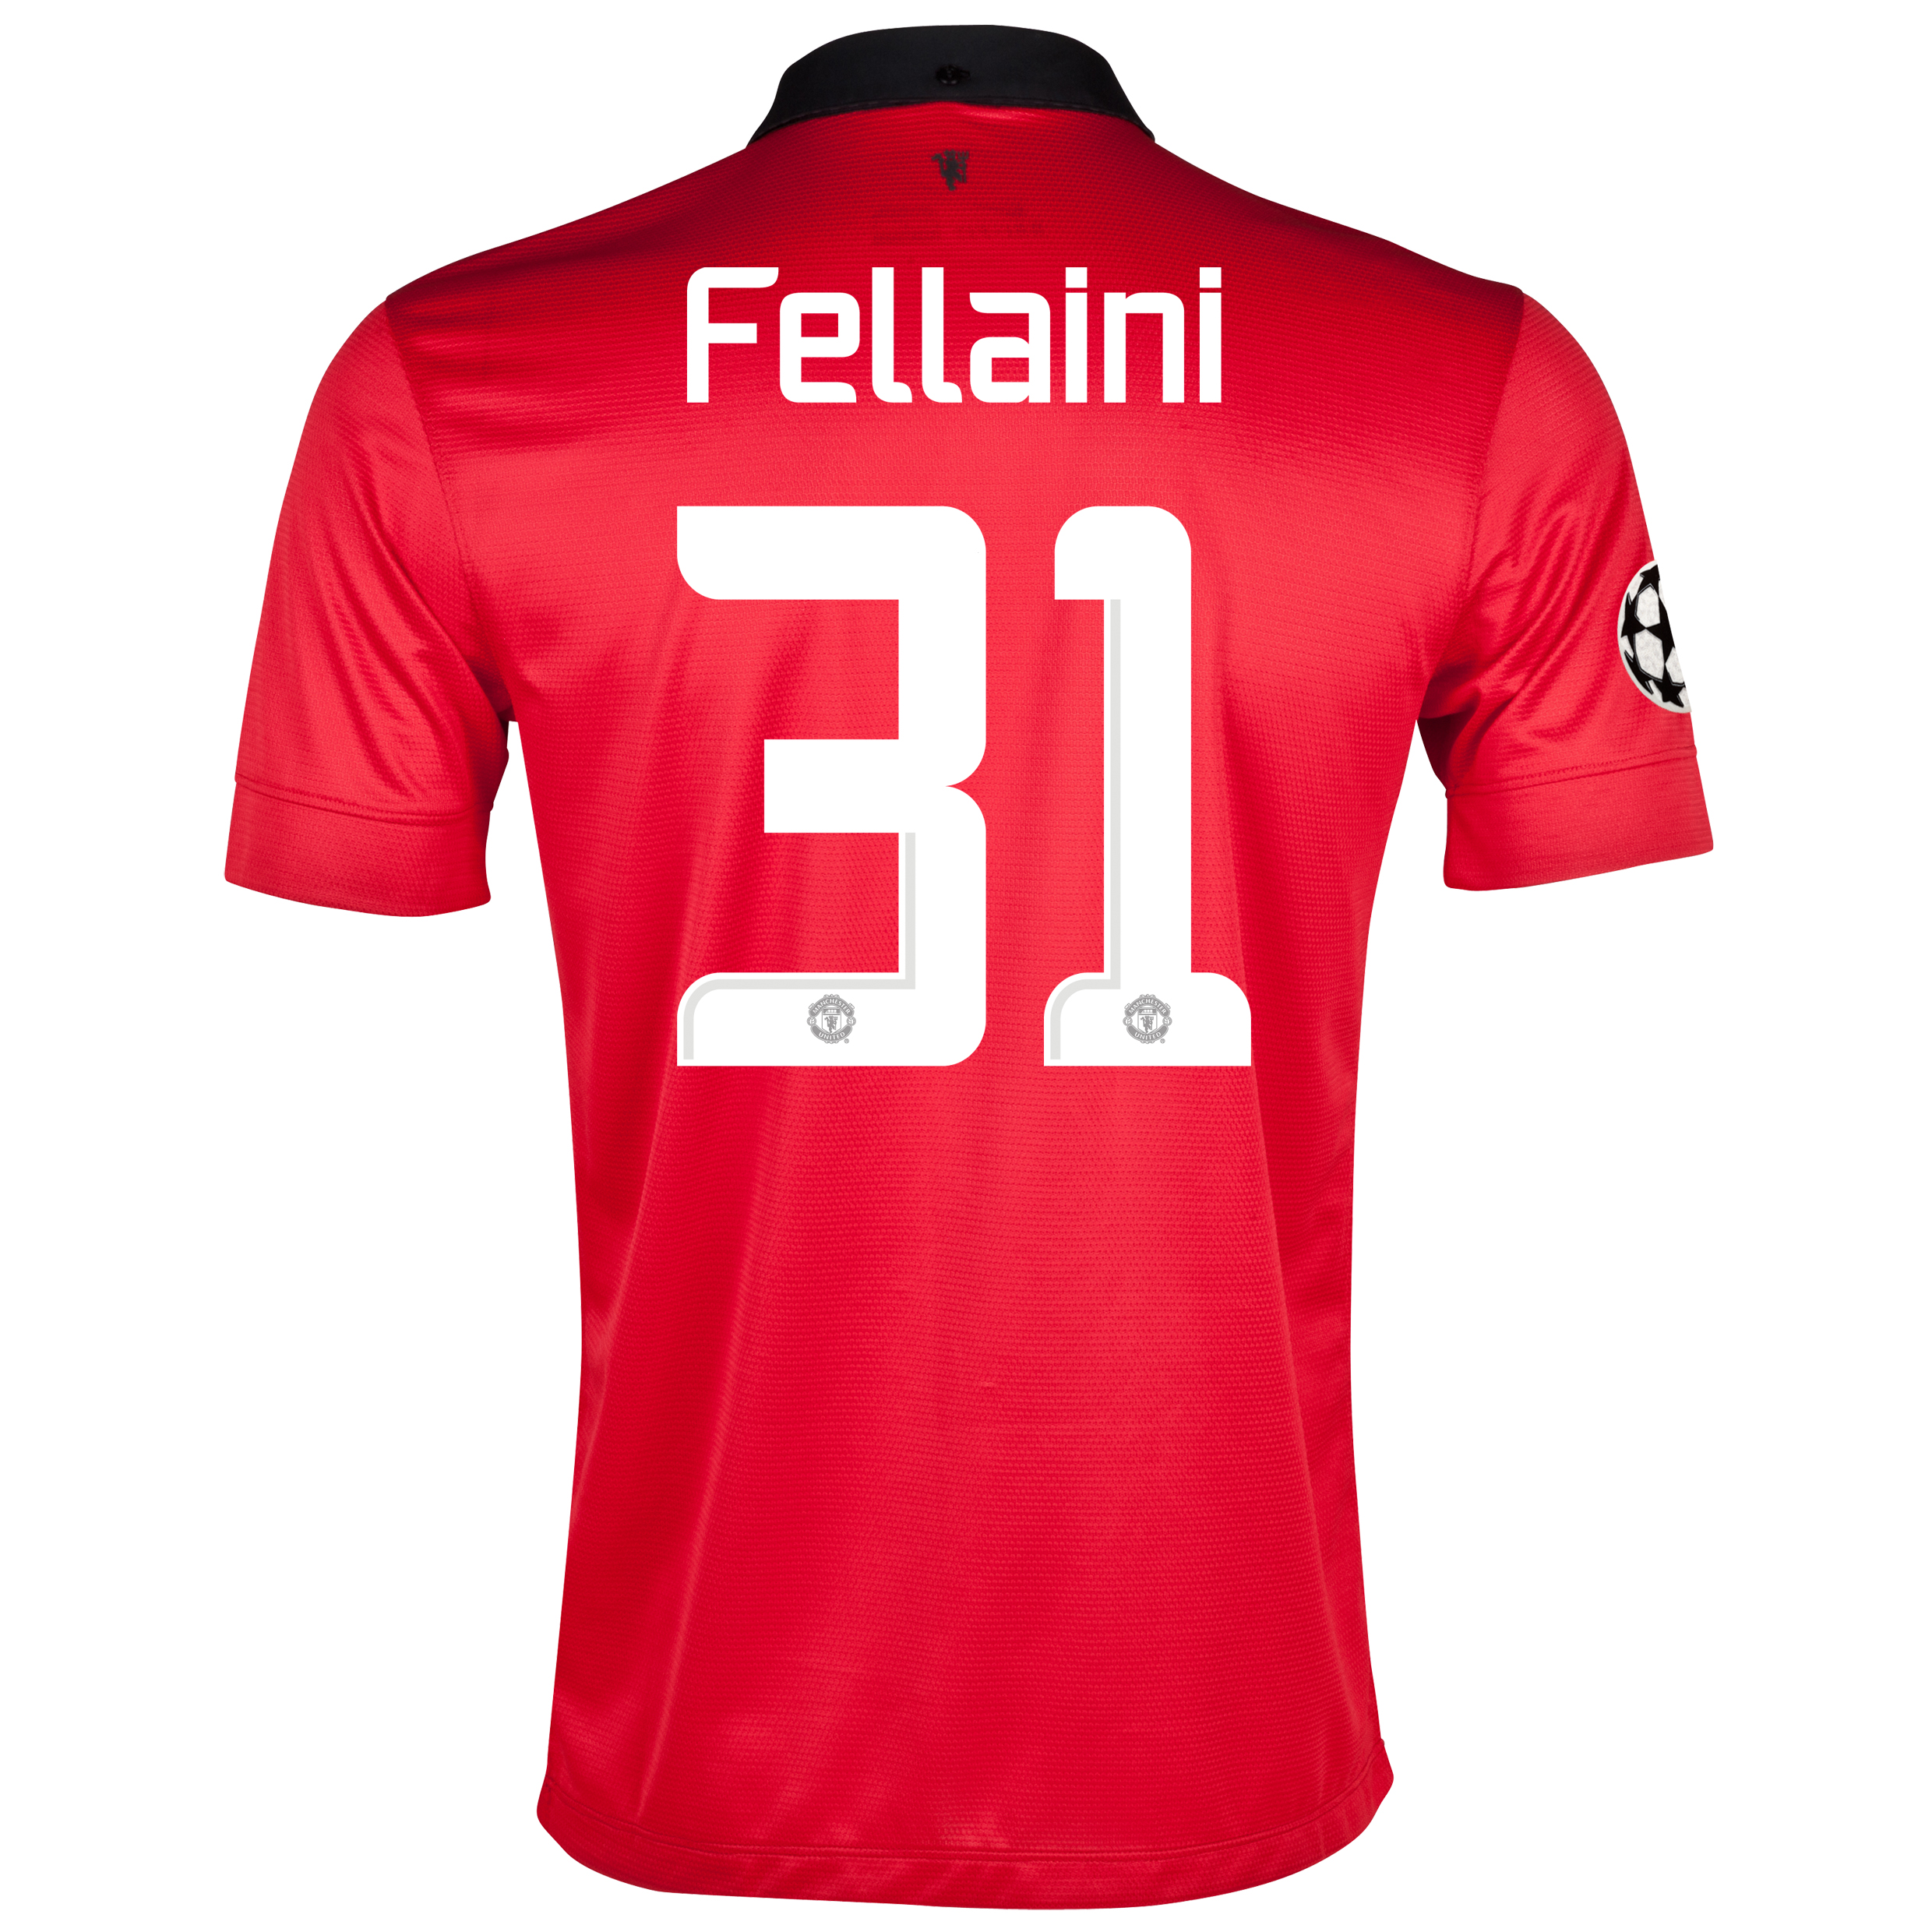 Manchester United UEFA Champions League Home Shirt 2013/14 - Kids with Fellaini 31 printing